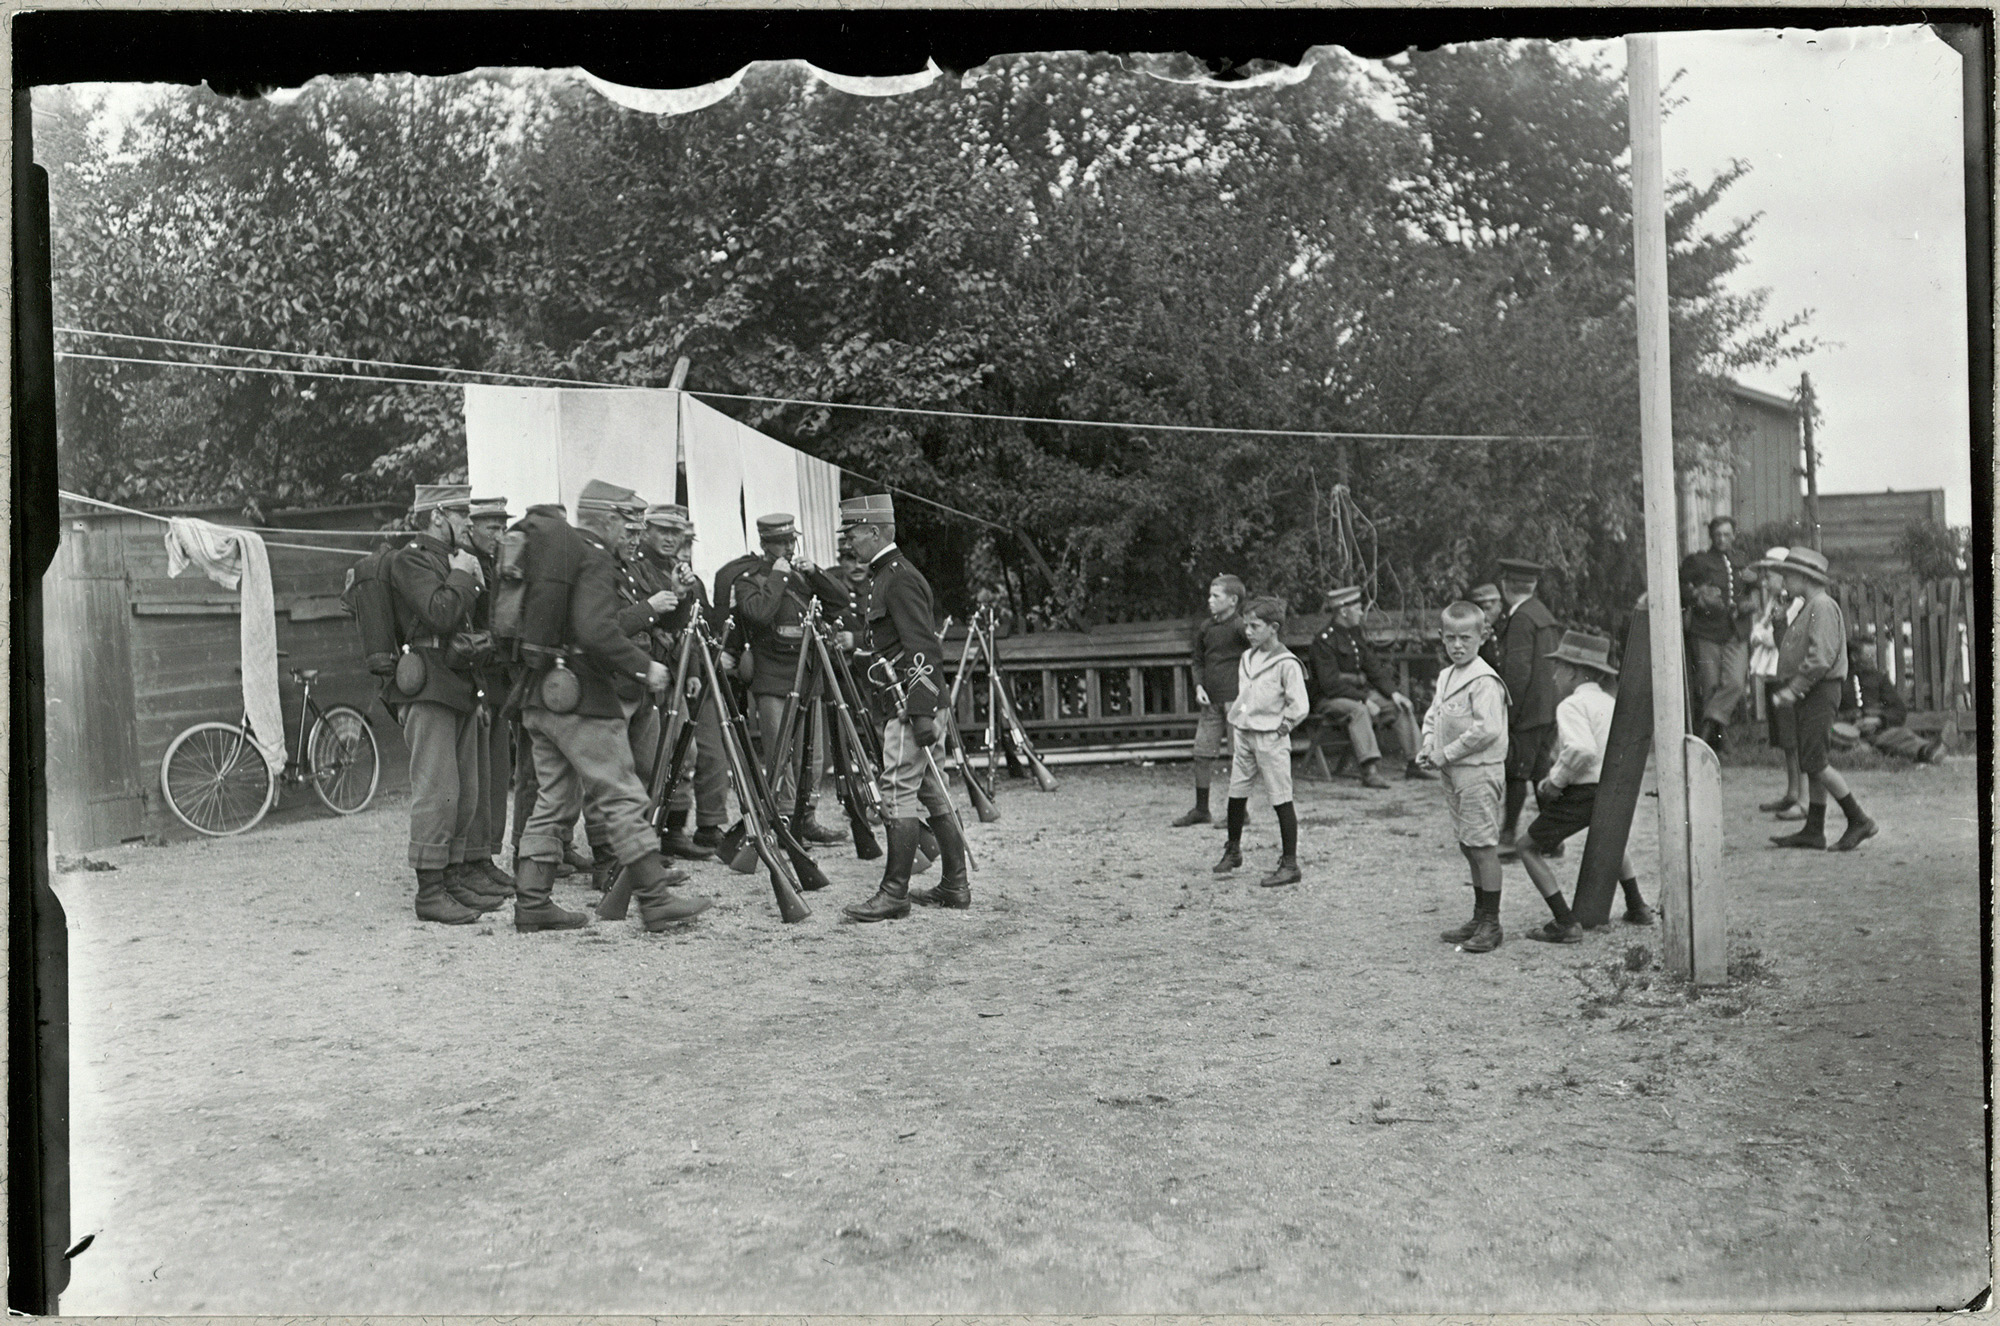 Soldiers from the reserve, who had been called up for duty at the outbreak of the war